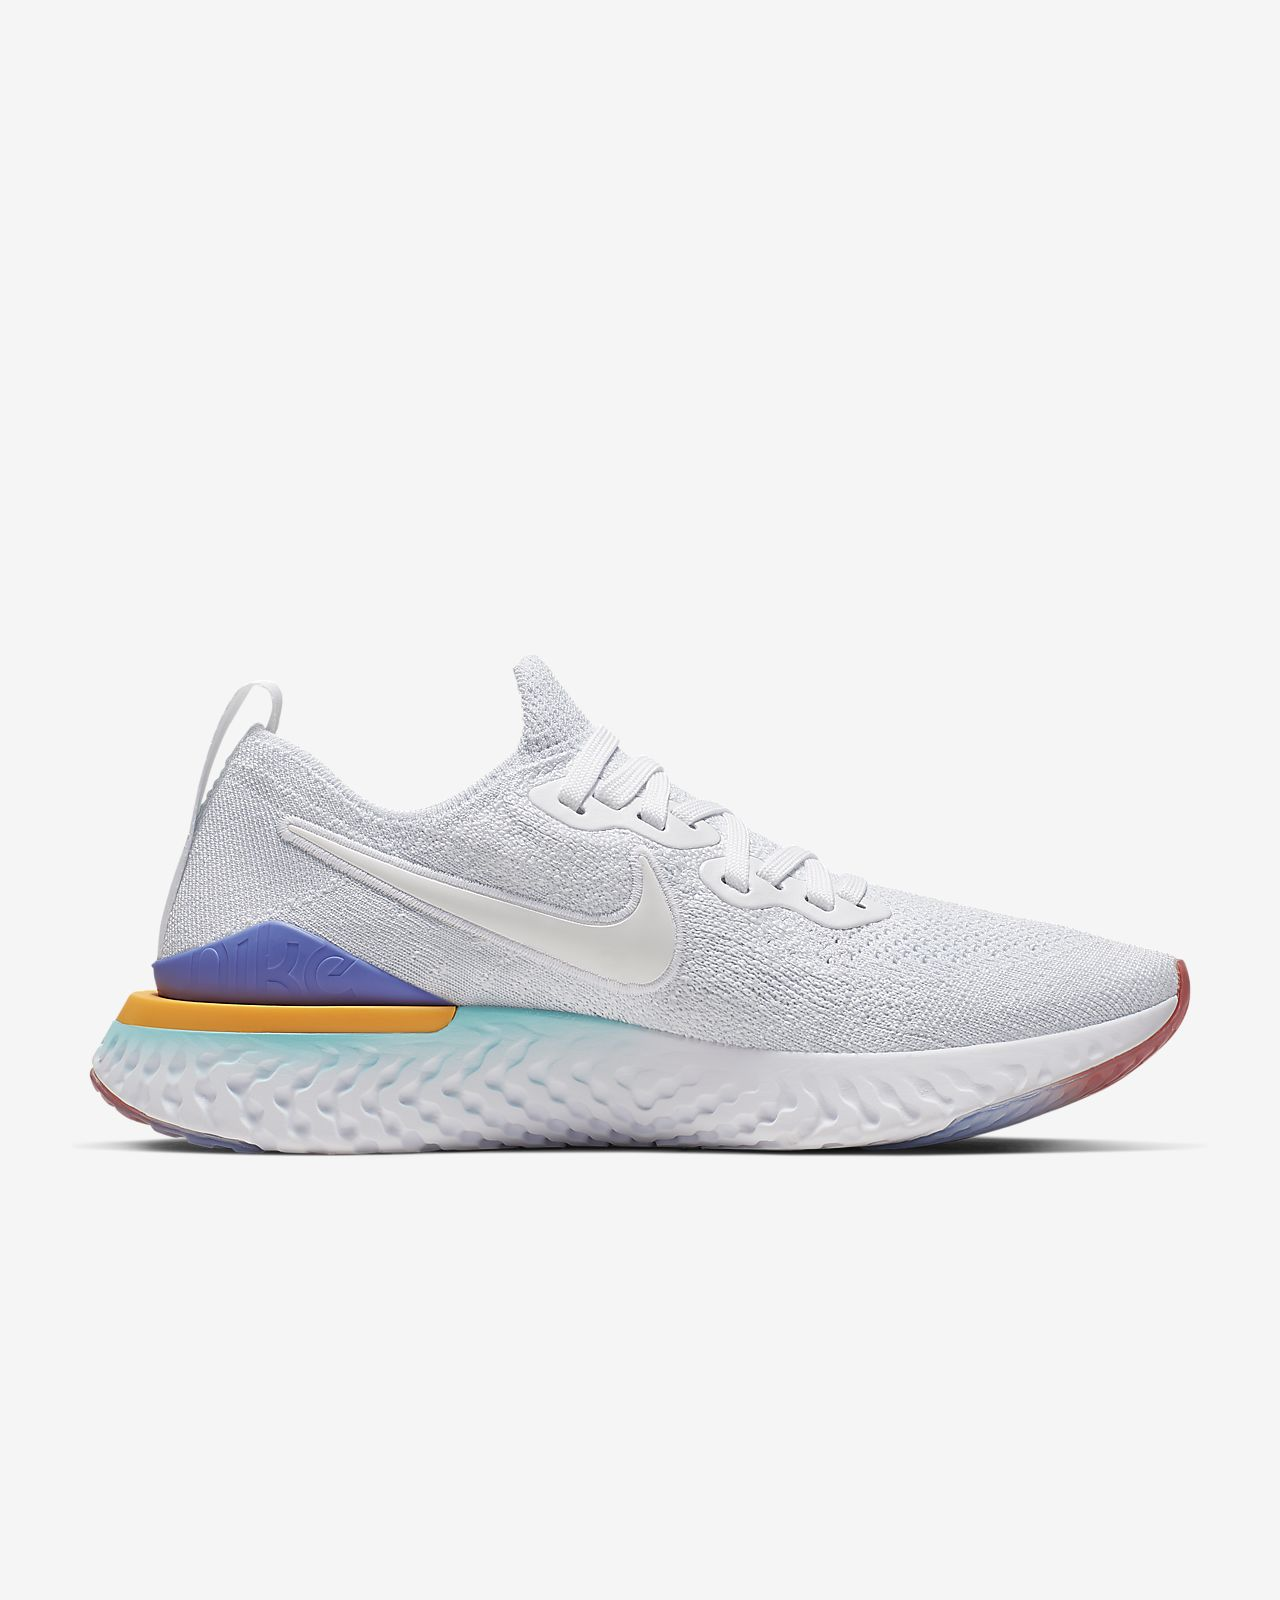 new product 2f562 91f71 ... Nike Epic React Flyknit 2 Zapatillas de running - Mujer